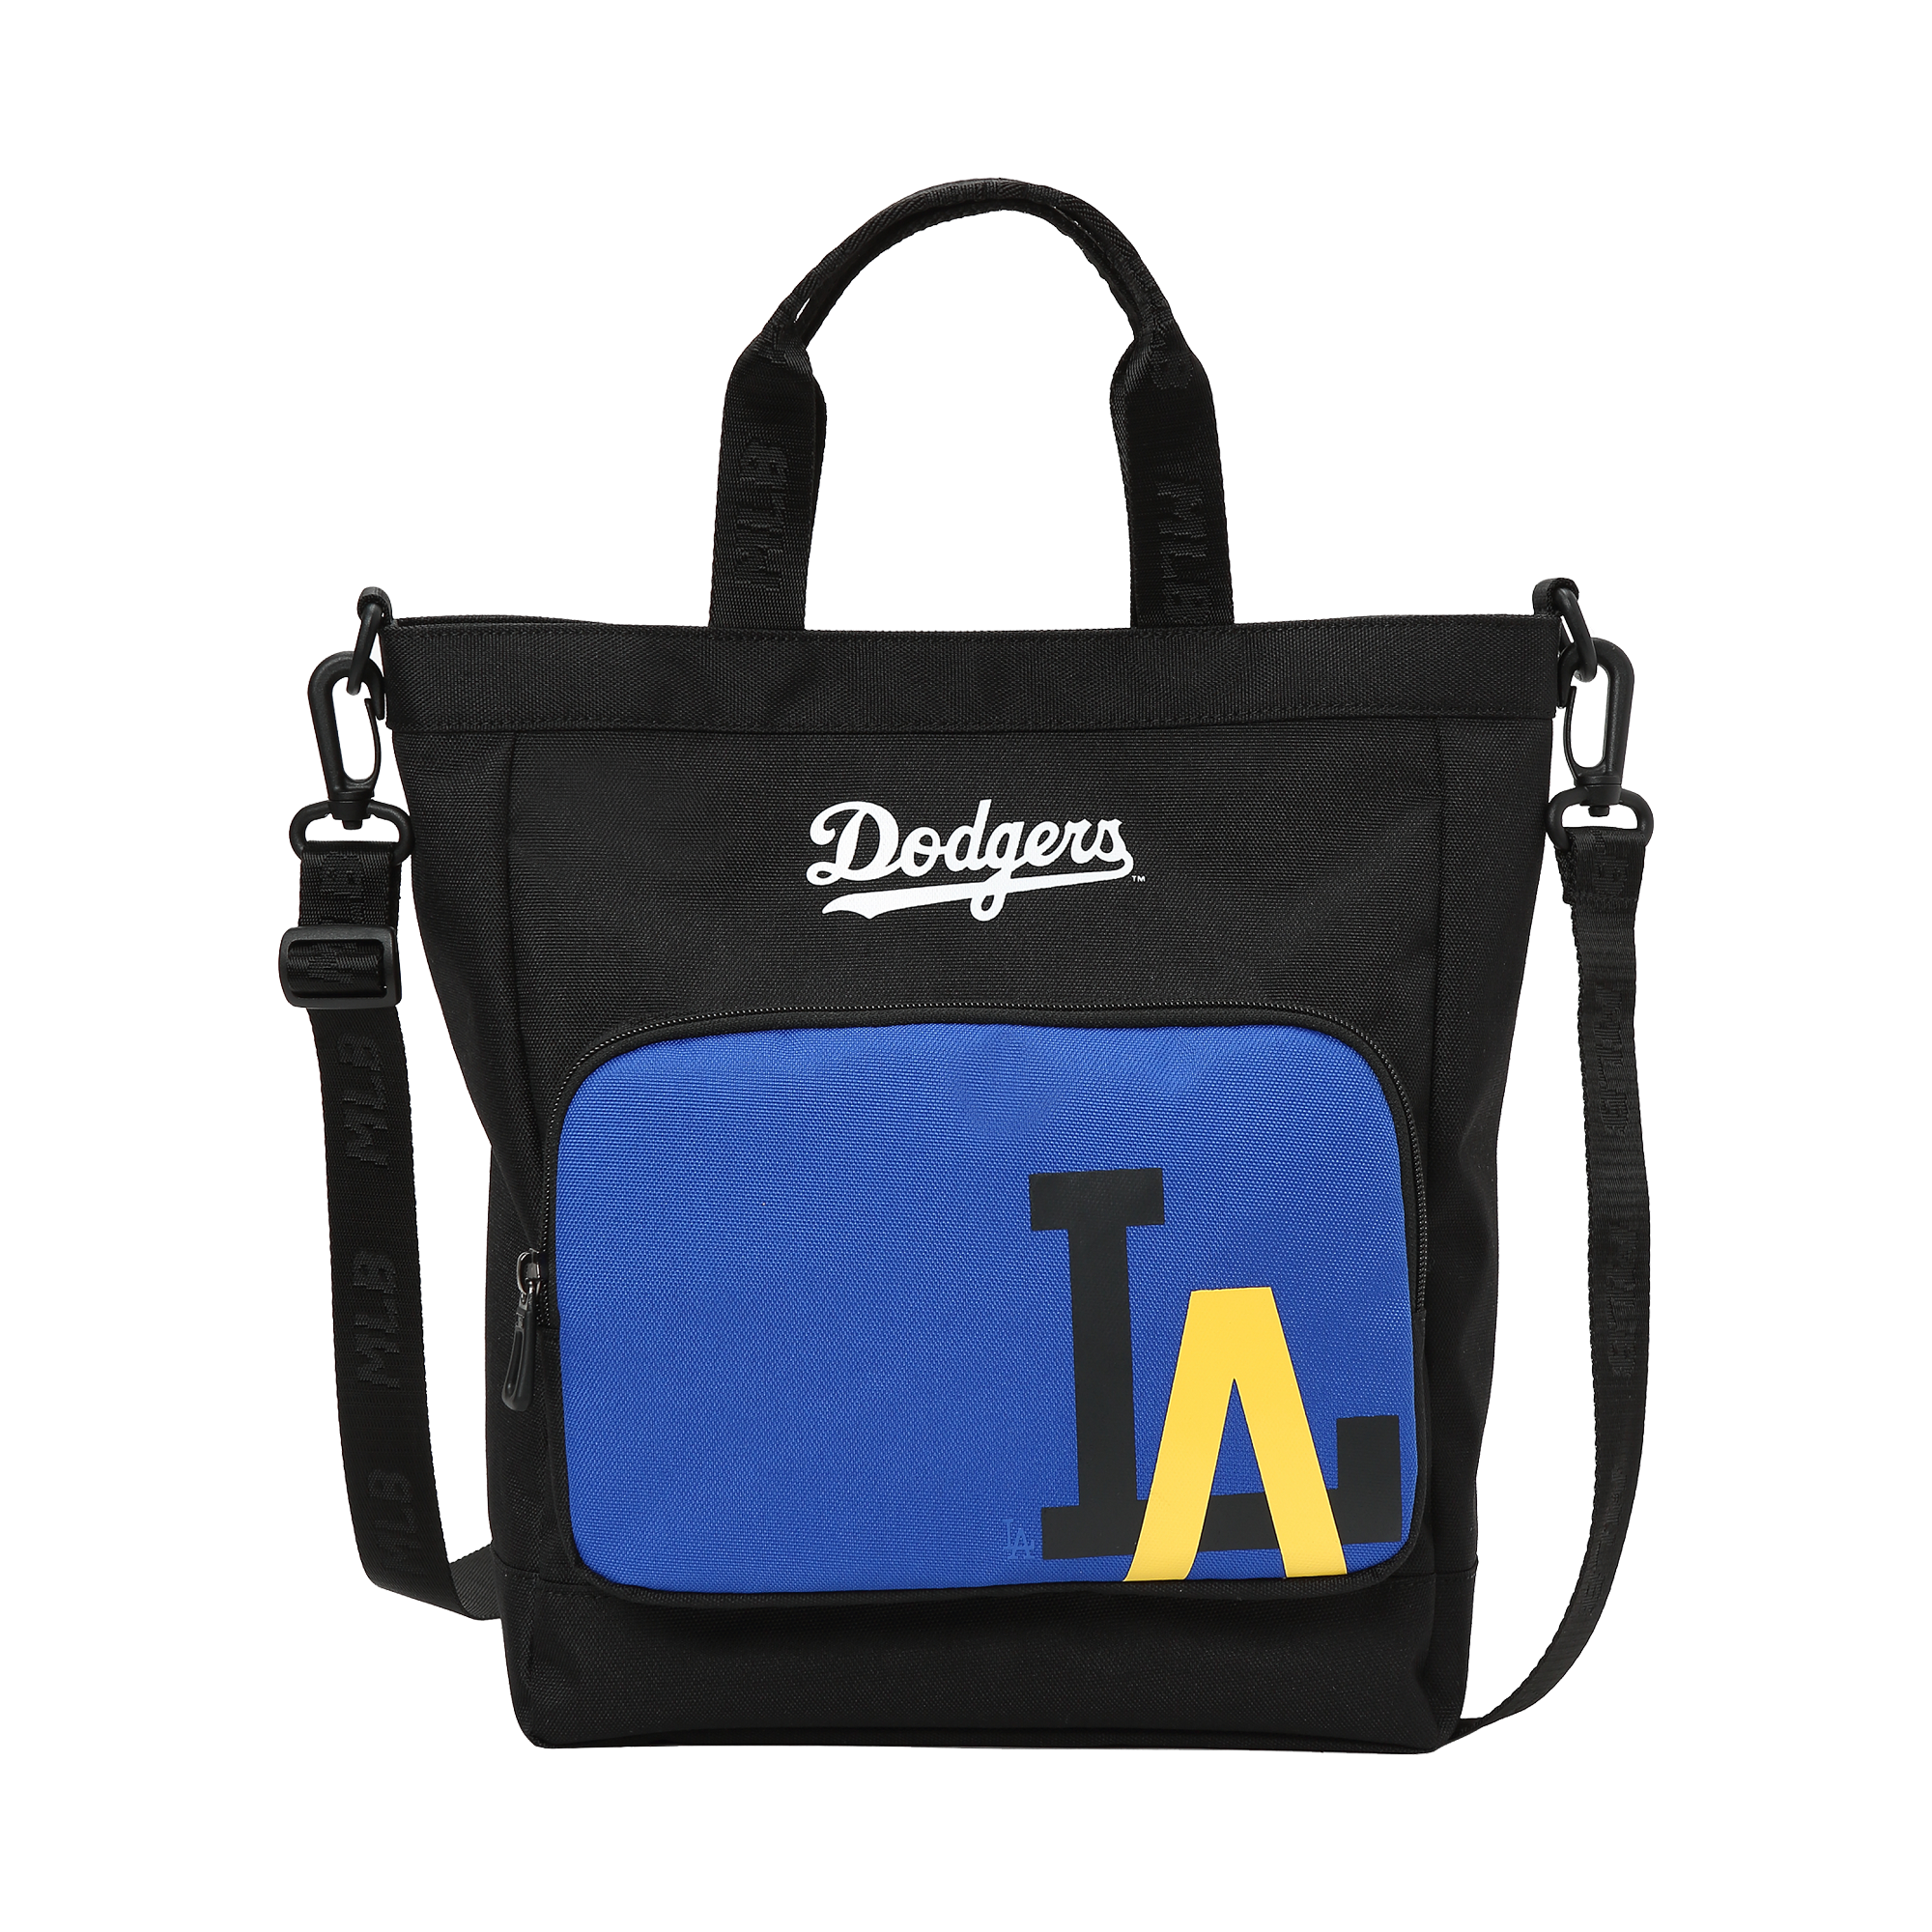 MLBKIDS SCHOOL BAG LA DODGERS MAJOR LOGO POINT SUB BAG